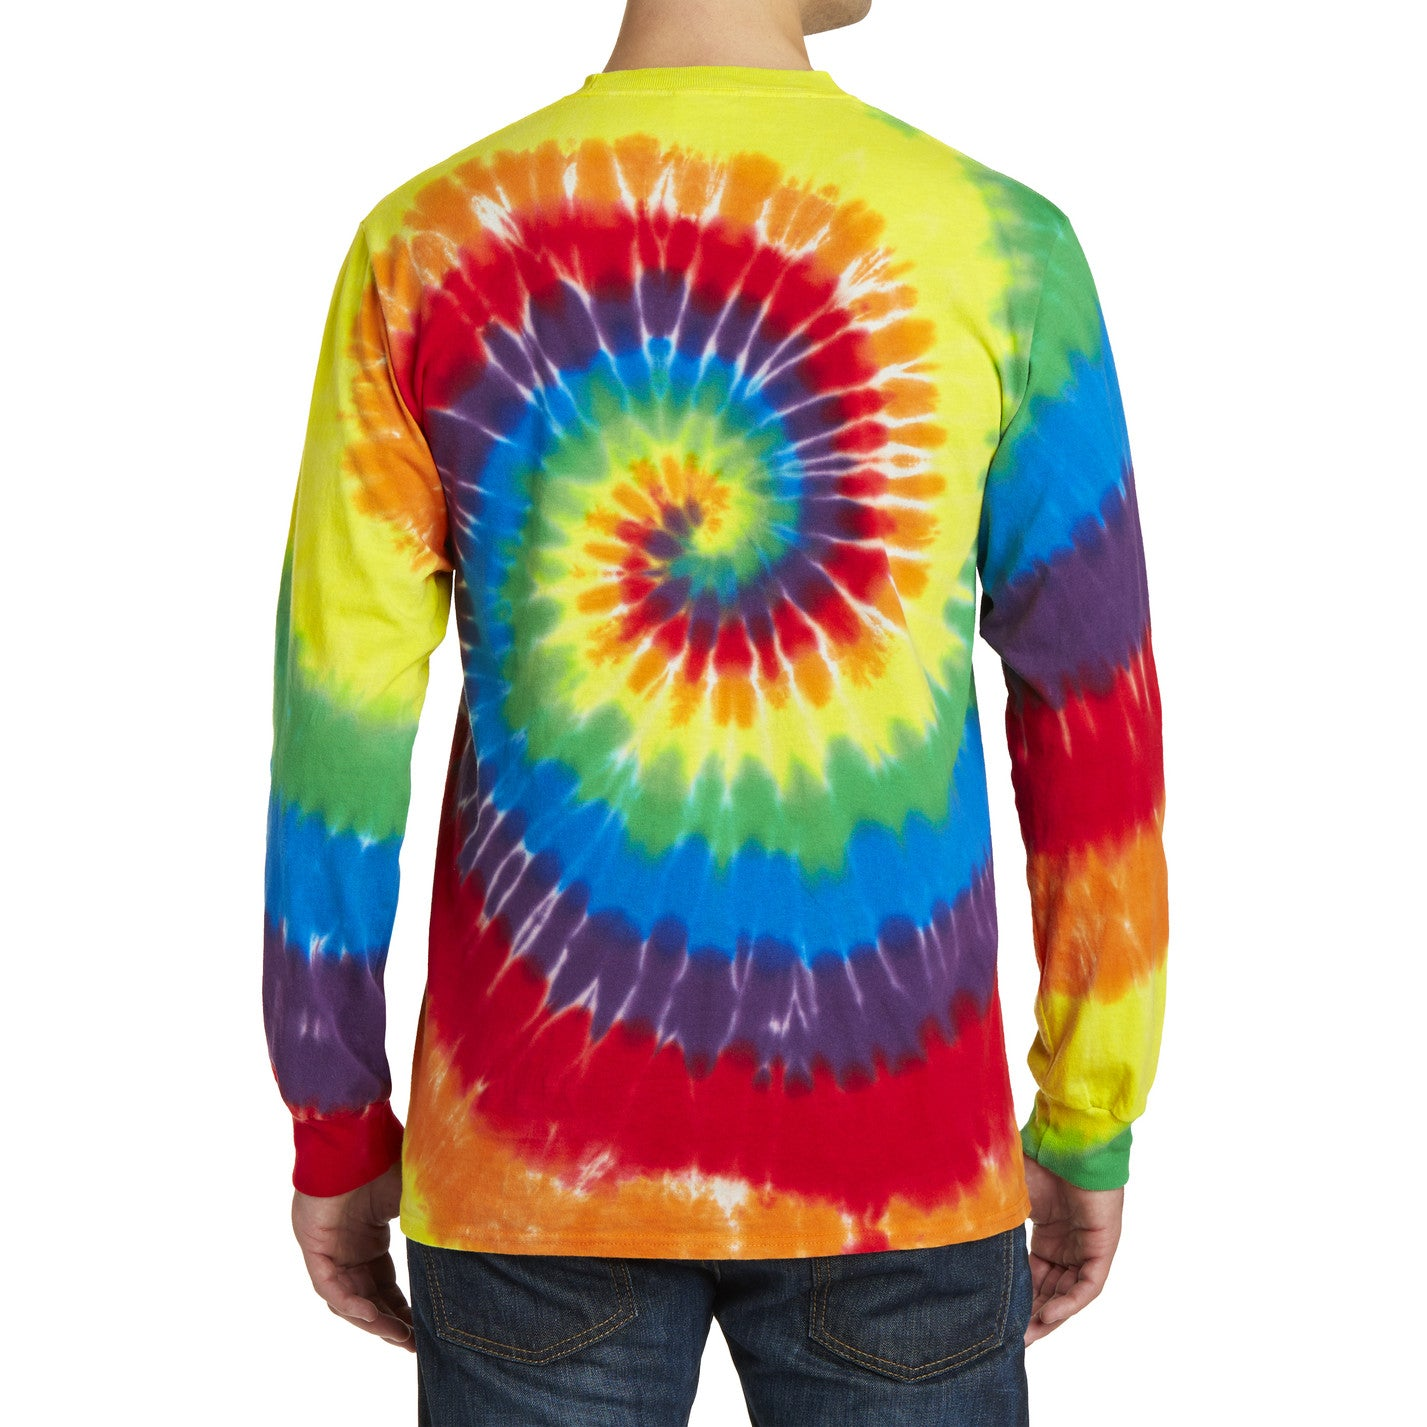 Men's Tie-Dye Long Sleeve Tee - Rainbow - Back